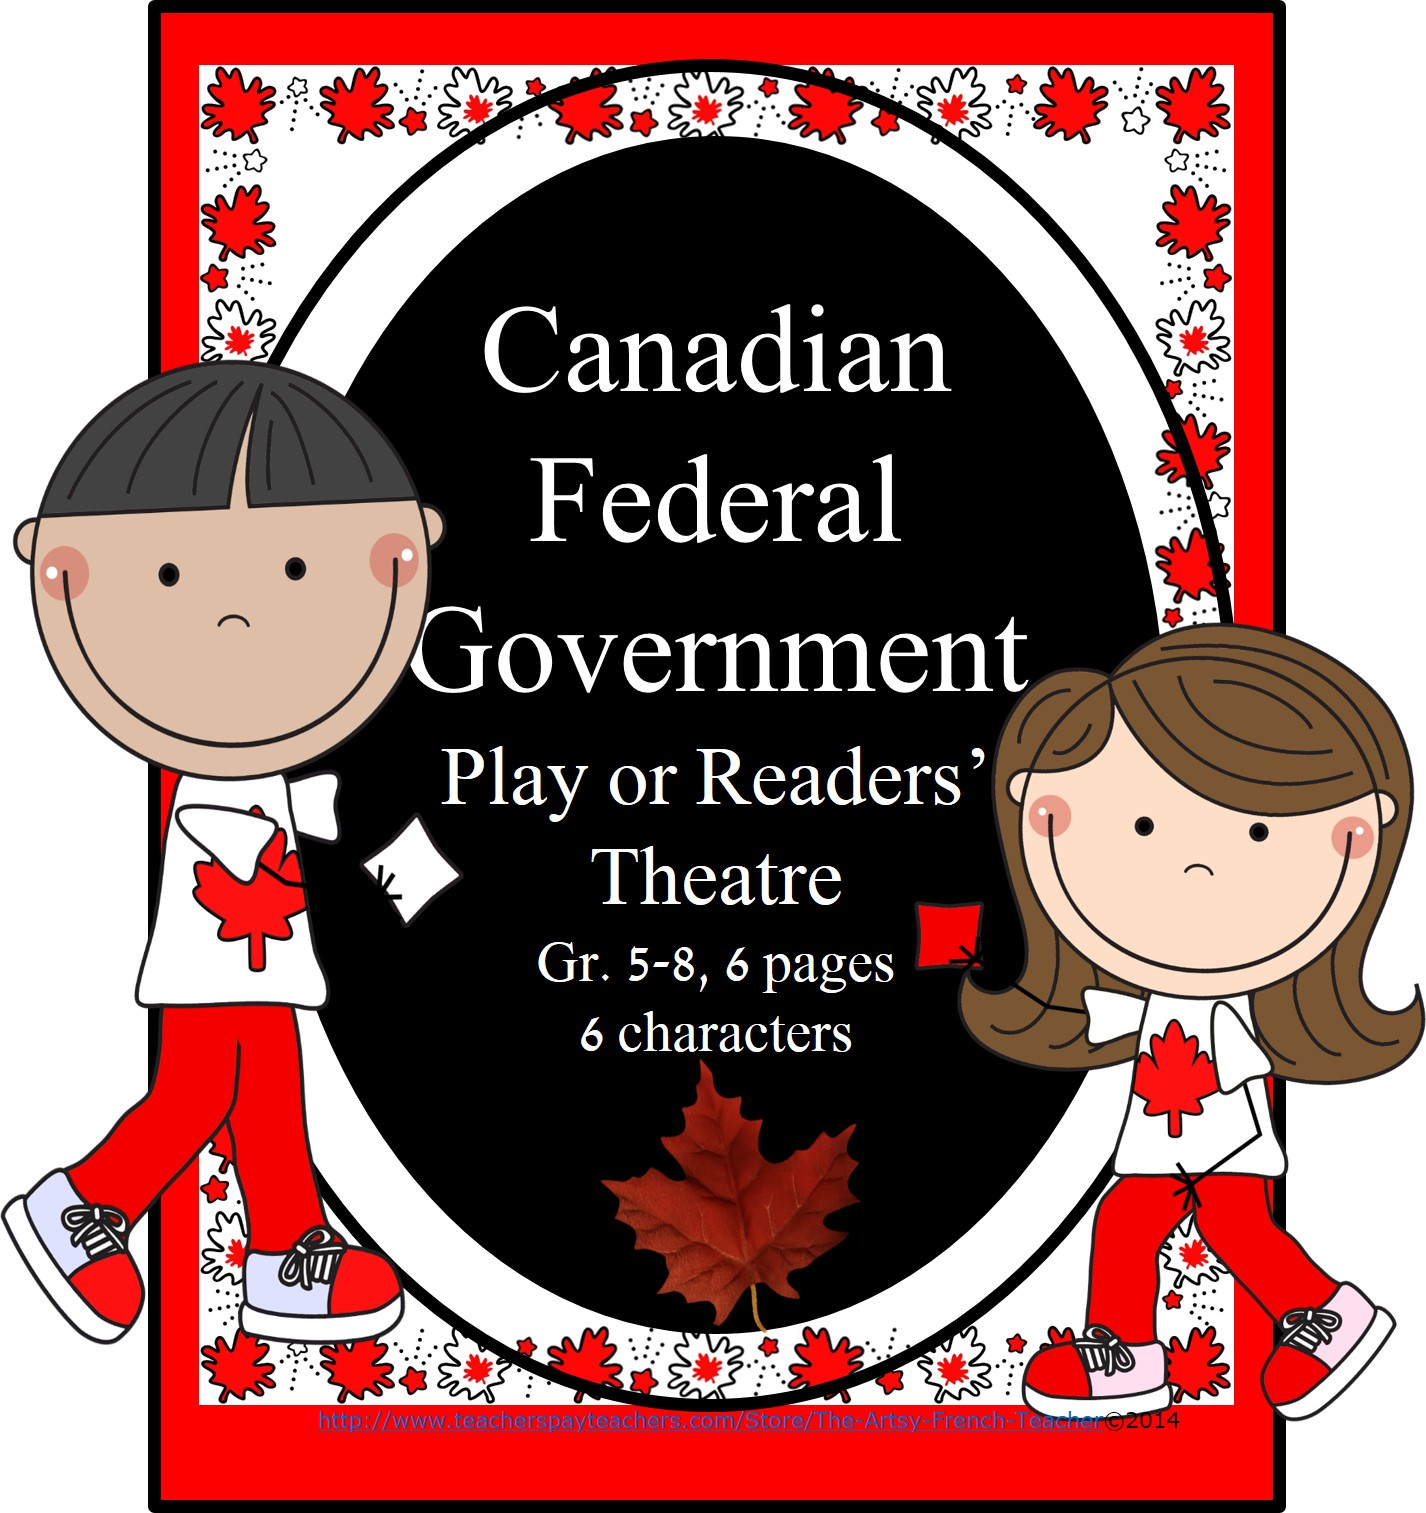 Political clipart federal government Theatre Federal for Readers' Play